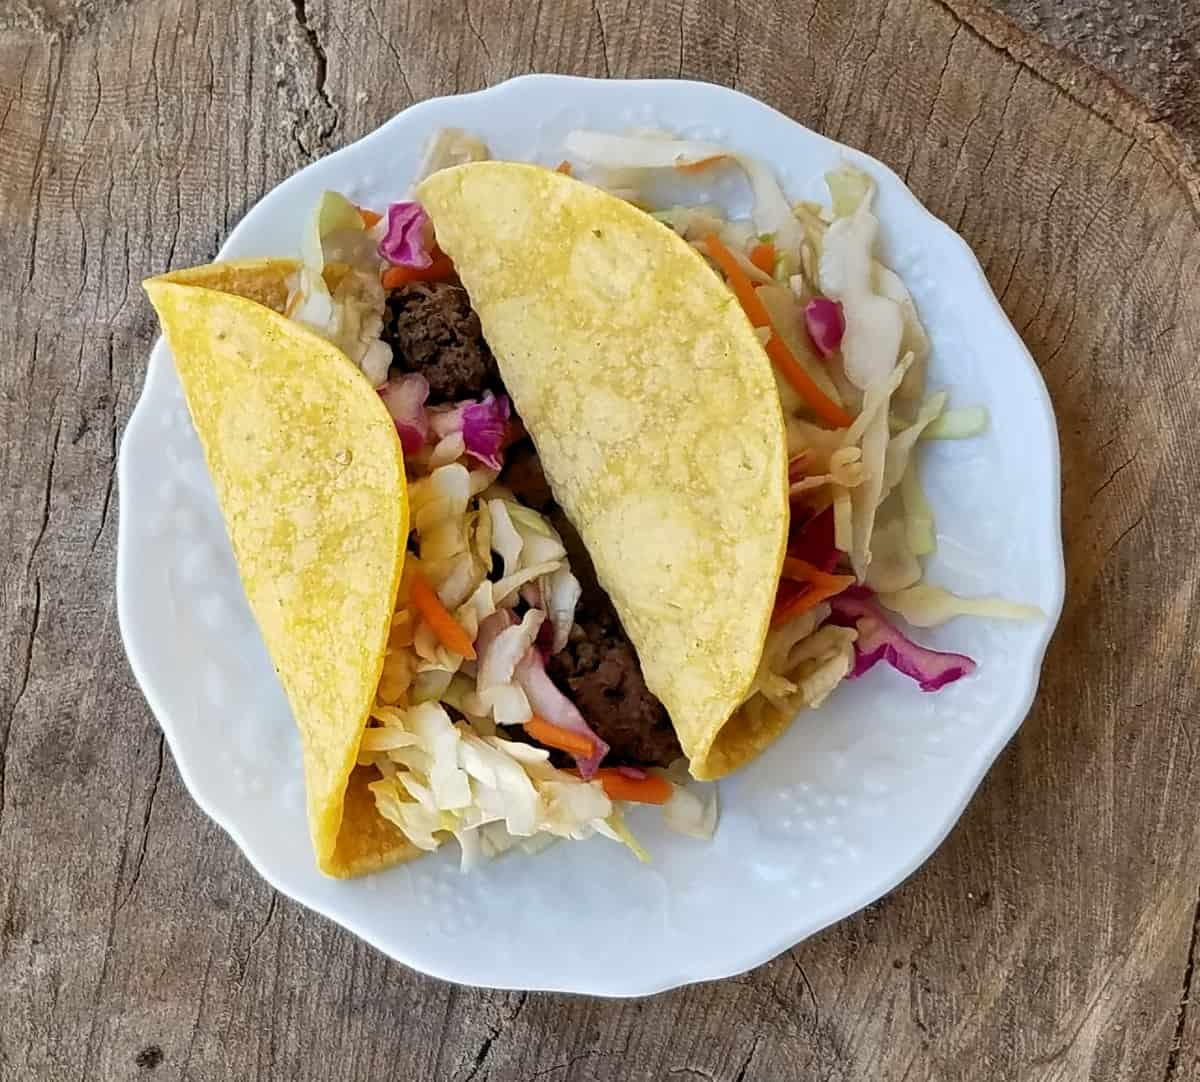 Two Asian spiced tacos on white plate on wood